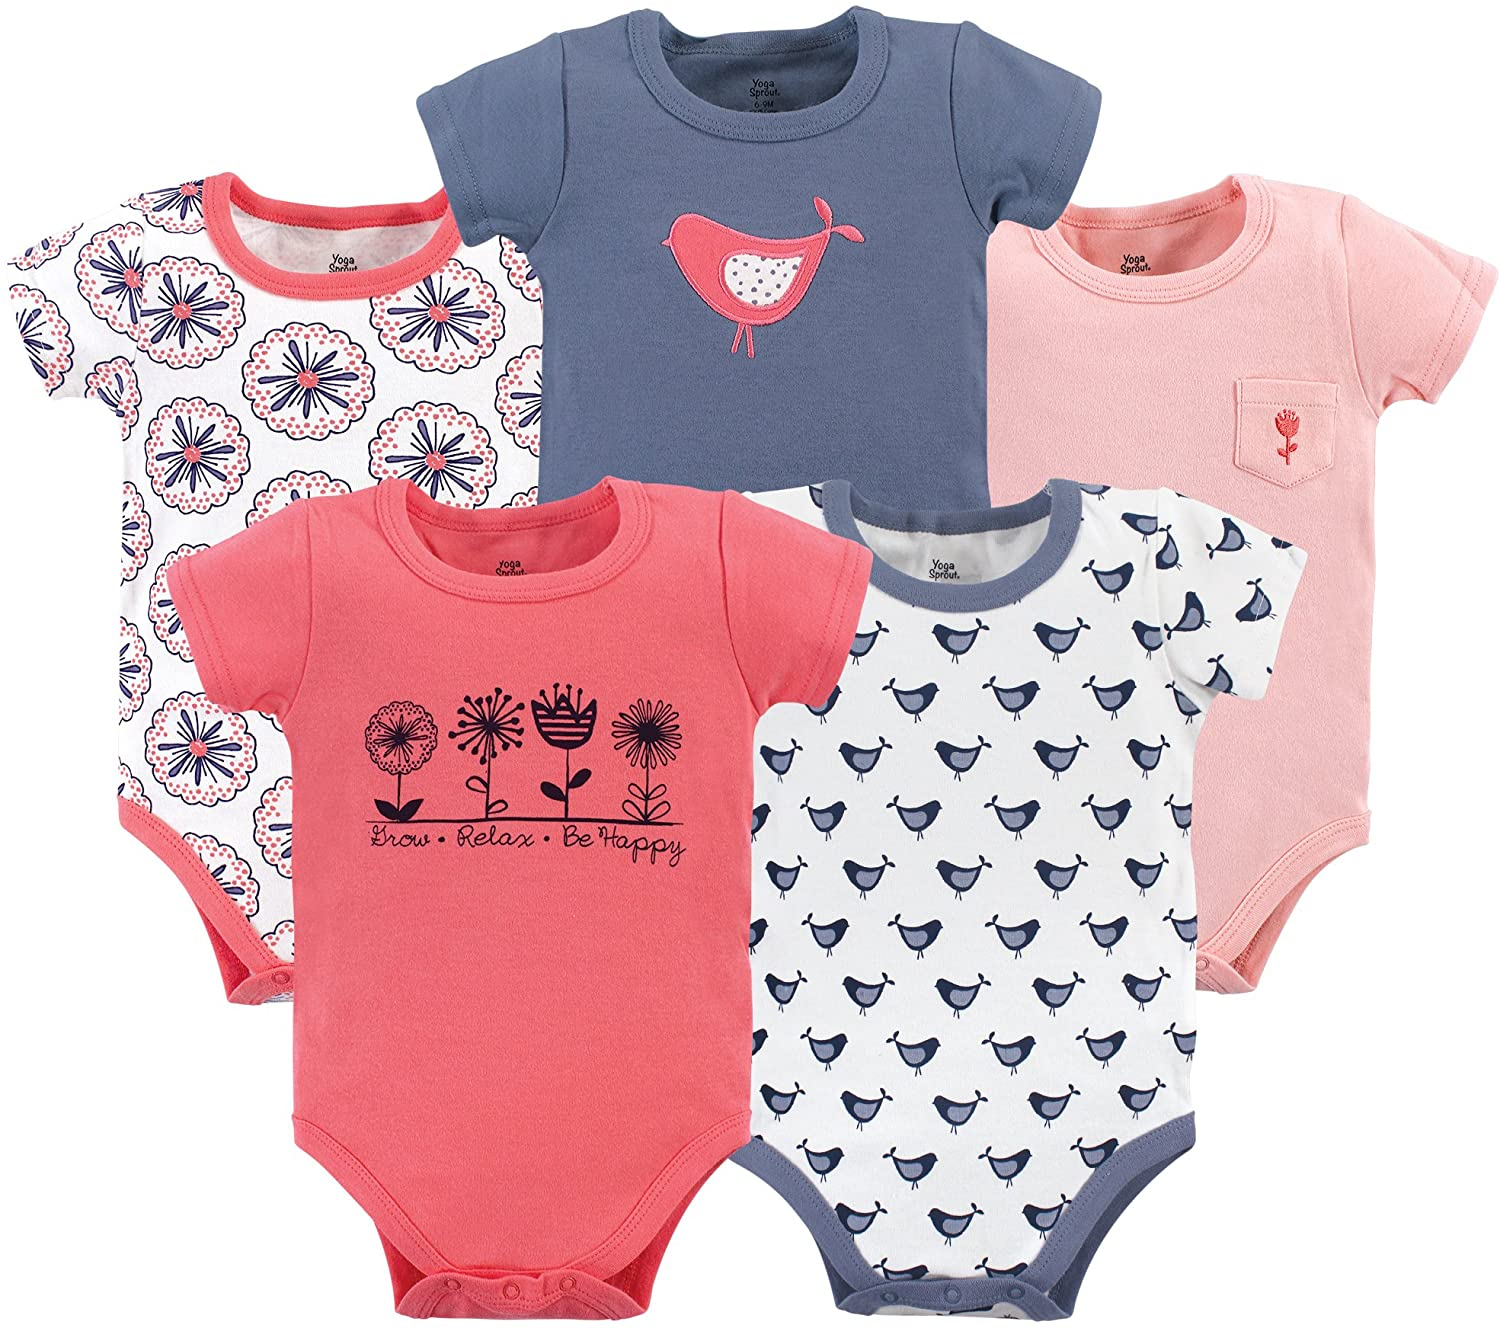 Yoga Sprout Unisex Baby Cotton Bodysuits: Clothing